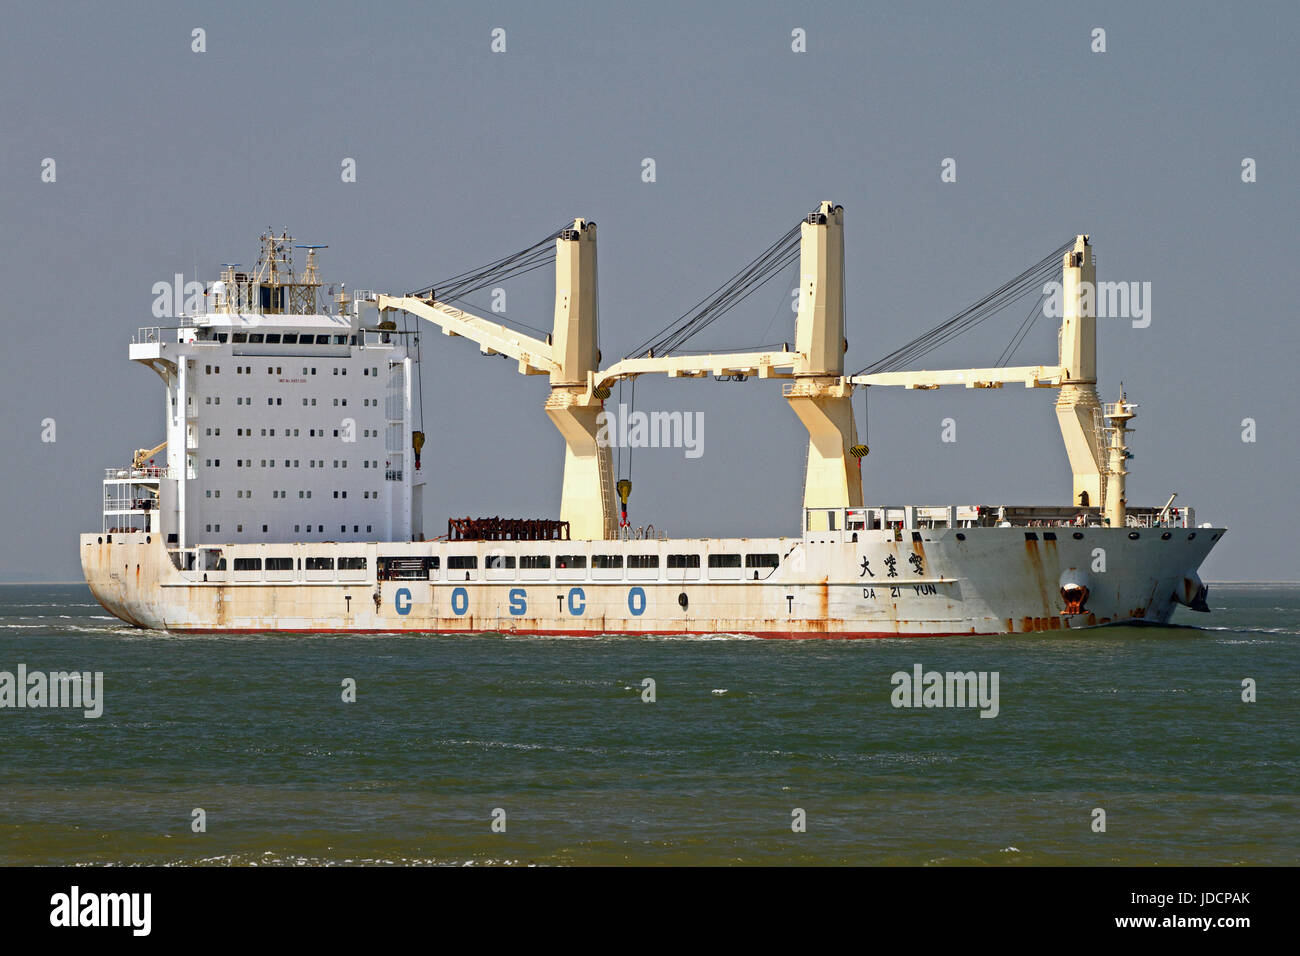 The general cargo ship Da Zi Yun on the schelde river passing Terneuzen on the way to the port of Antwerp - Stock Image